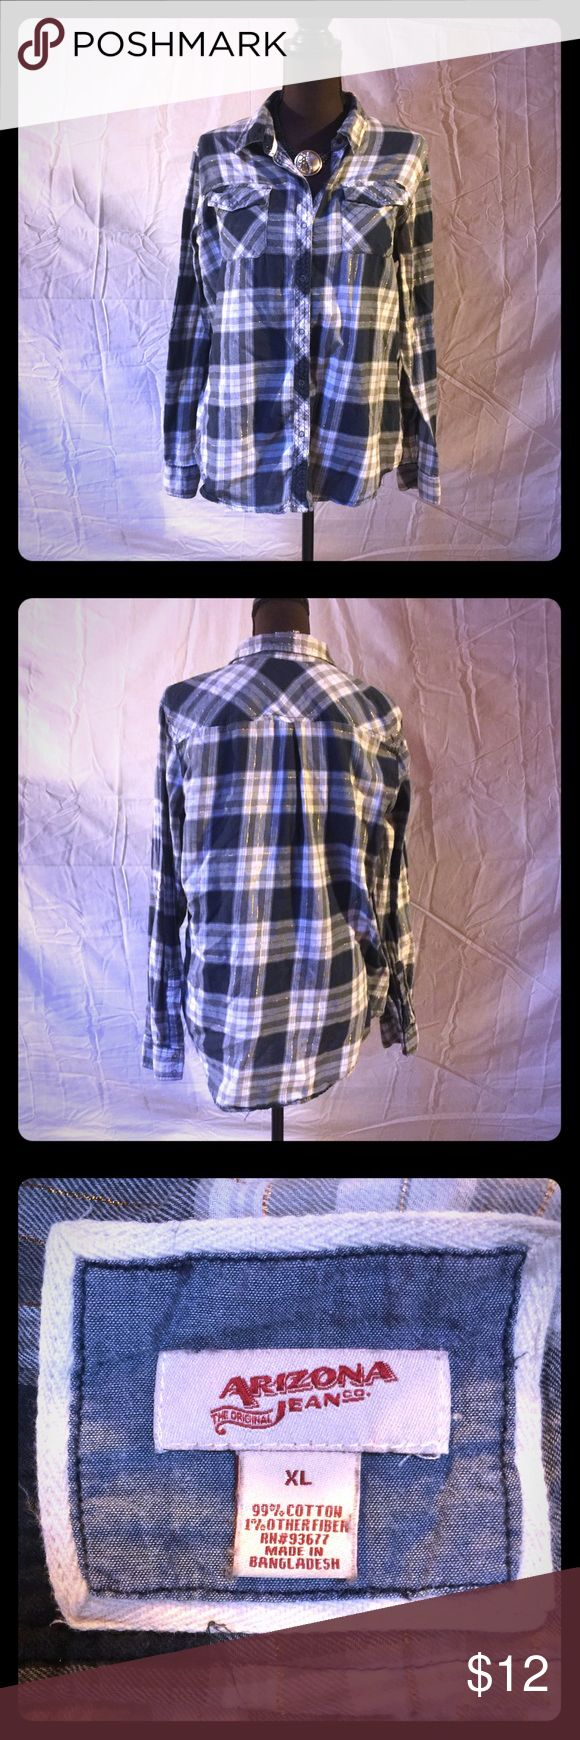 """Arizona Jean Co Plaid button down top. Navy, grey and white with metallic gold accent button down Plaid shirt from Old Navy. Size XL. Gently used and in very good condition. No rips, tears or stains. Measures pit to pit 22"""", rear collar to hem 28"""". 99% cotton. No trades. Reasonable offers welcome. Old Navy Tops Button Down Shirts"""